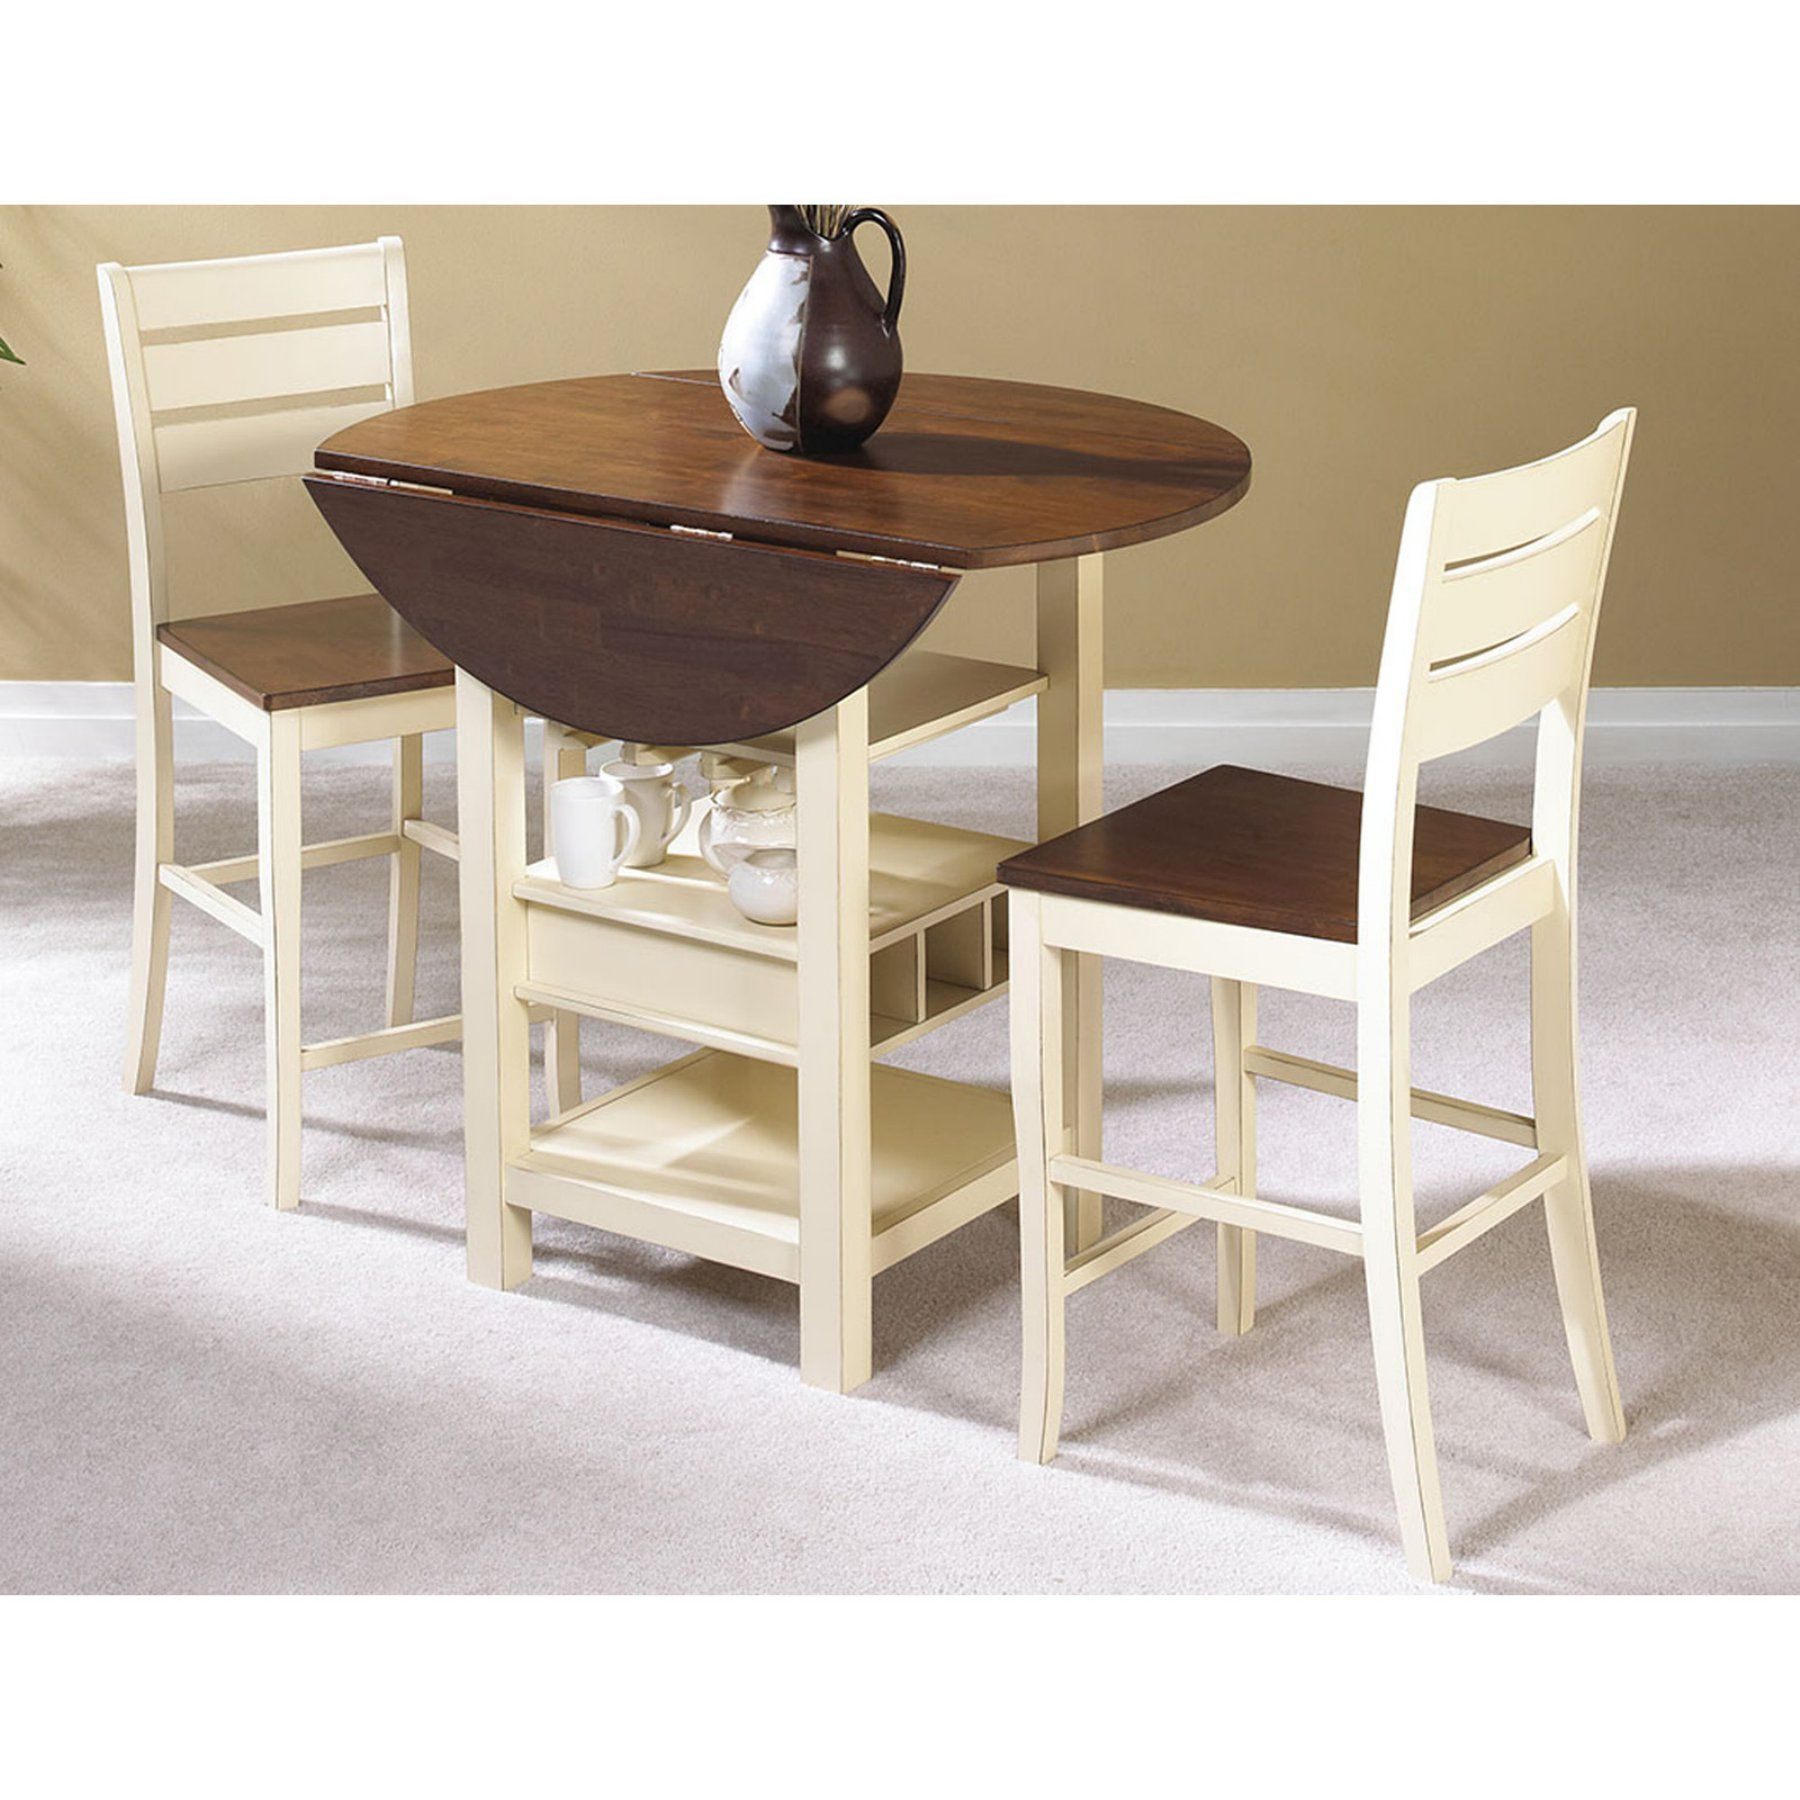 Sunset Trading Cascade 3 Piece Cream & Espresso Pub Table